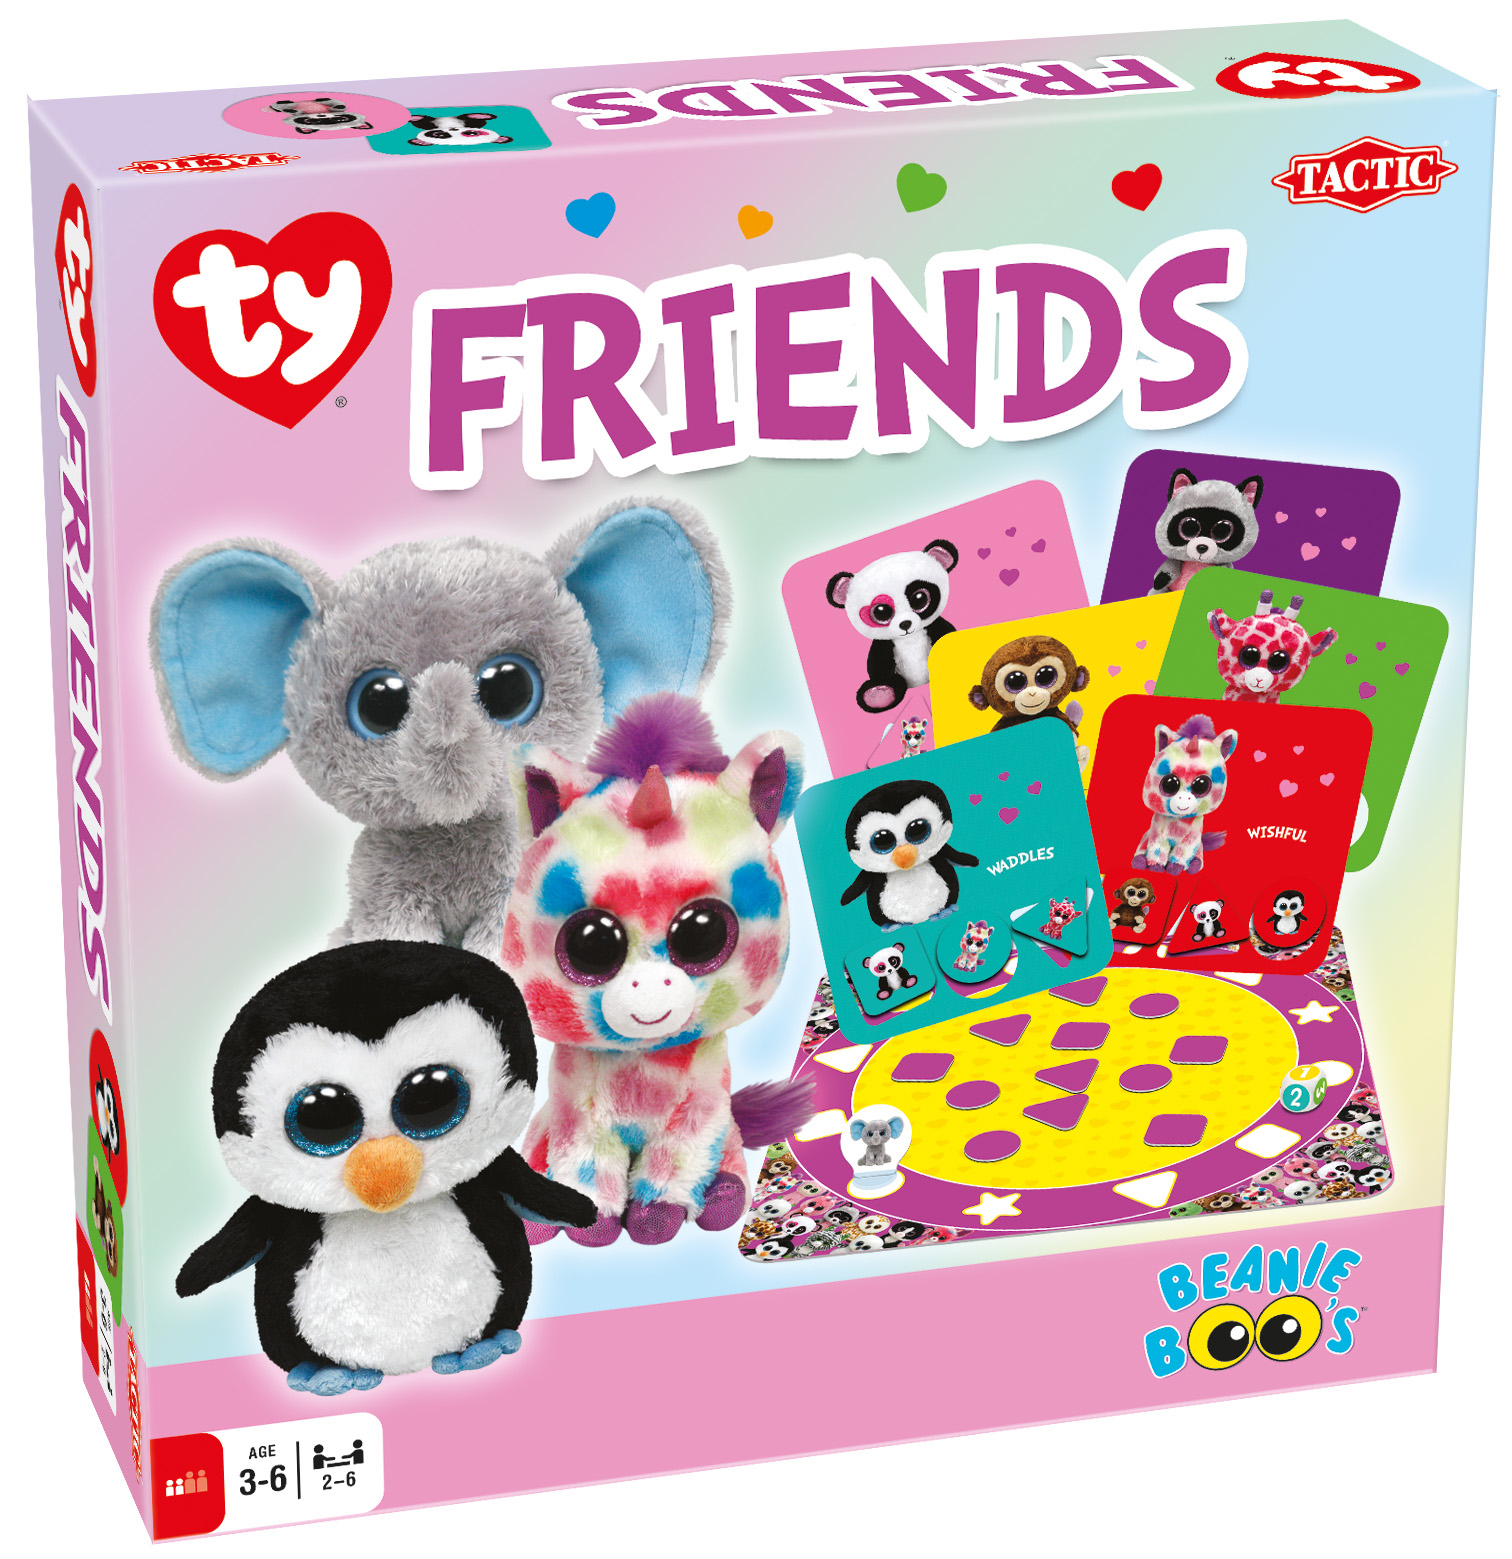 caillou 1567 furthermore bowling coloring 11 together with Ty Friends not final furthermore 1469293272rocco beanie boo as well ty glubschie panda bamboo 36907 also maxresdefault likewise GU170972 6 also maxresdefault additionally eenhoorn 23 29501 moreover  in addition 9 1536. on beanie boo coloring pages